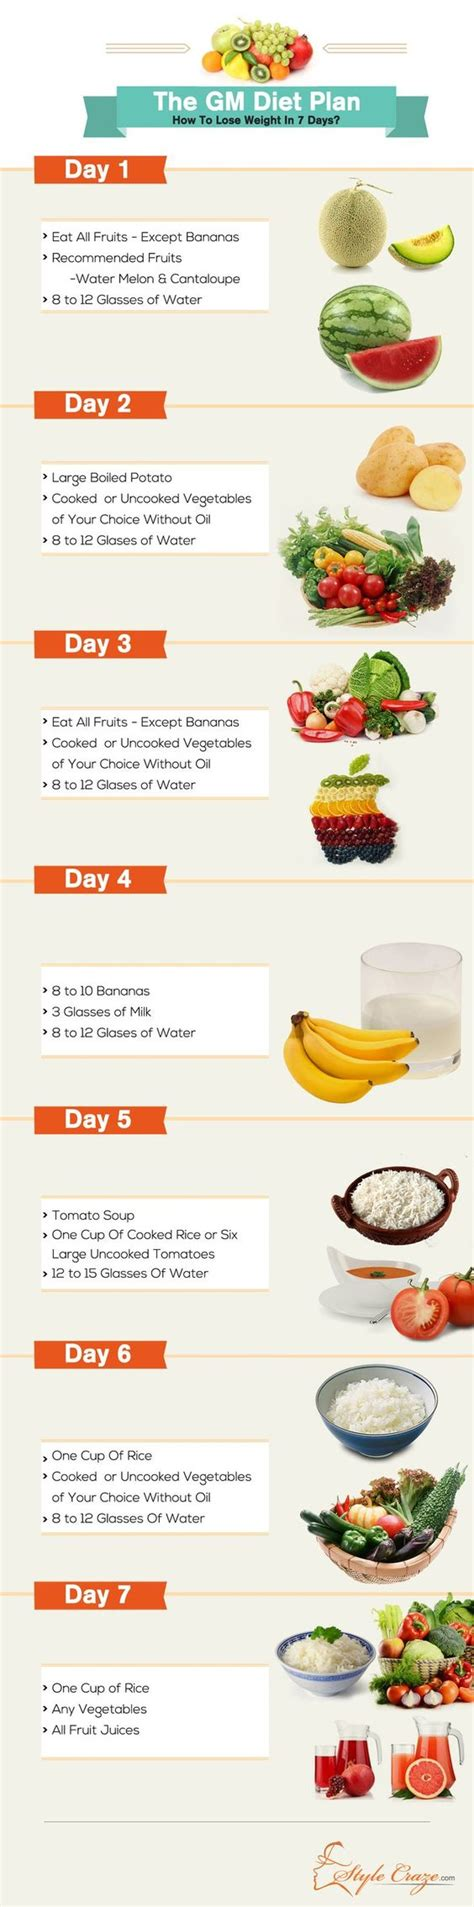 Week Detox Diet Plan by The Gm Diet Plan How To Lose Weight In Just 7 Days To